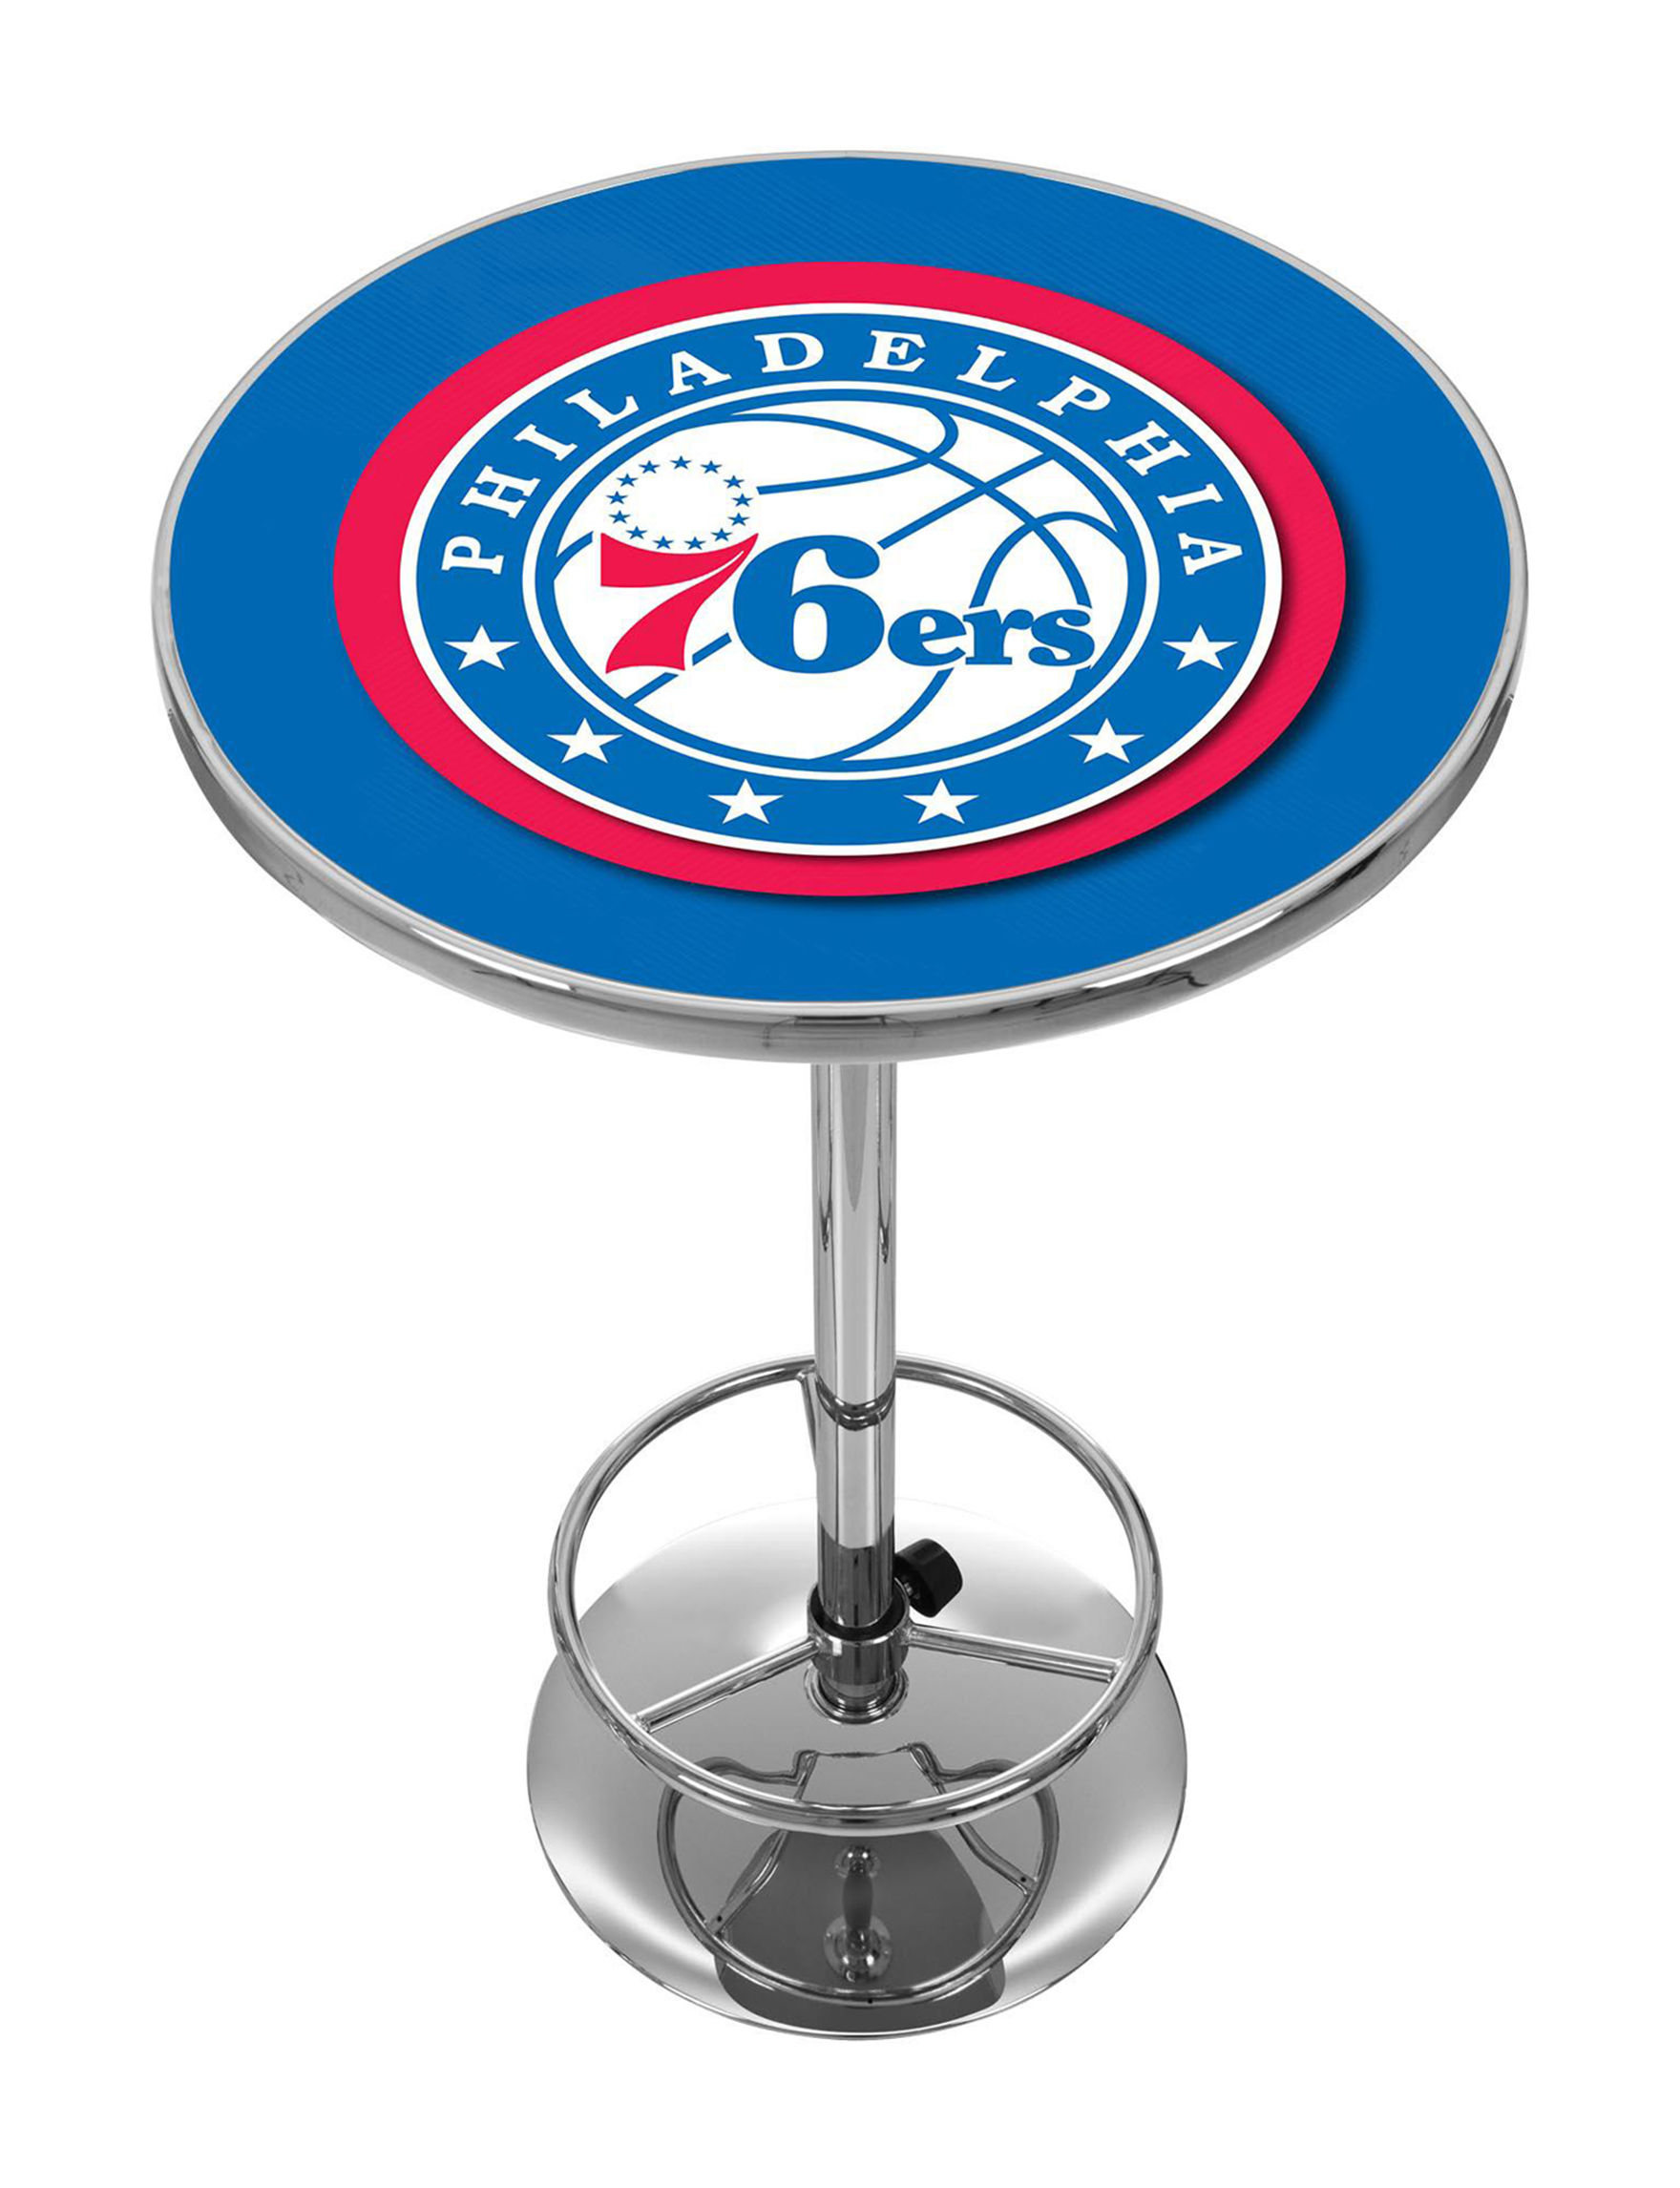 NBA Red / White / Blue Dining Tables Kitchen & Dining Furniture NBA